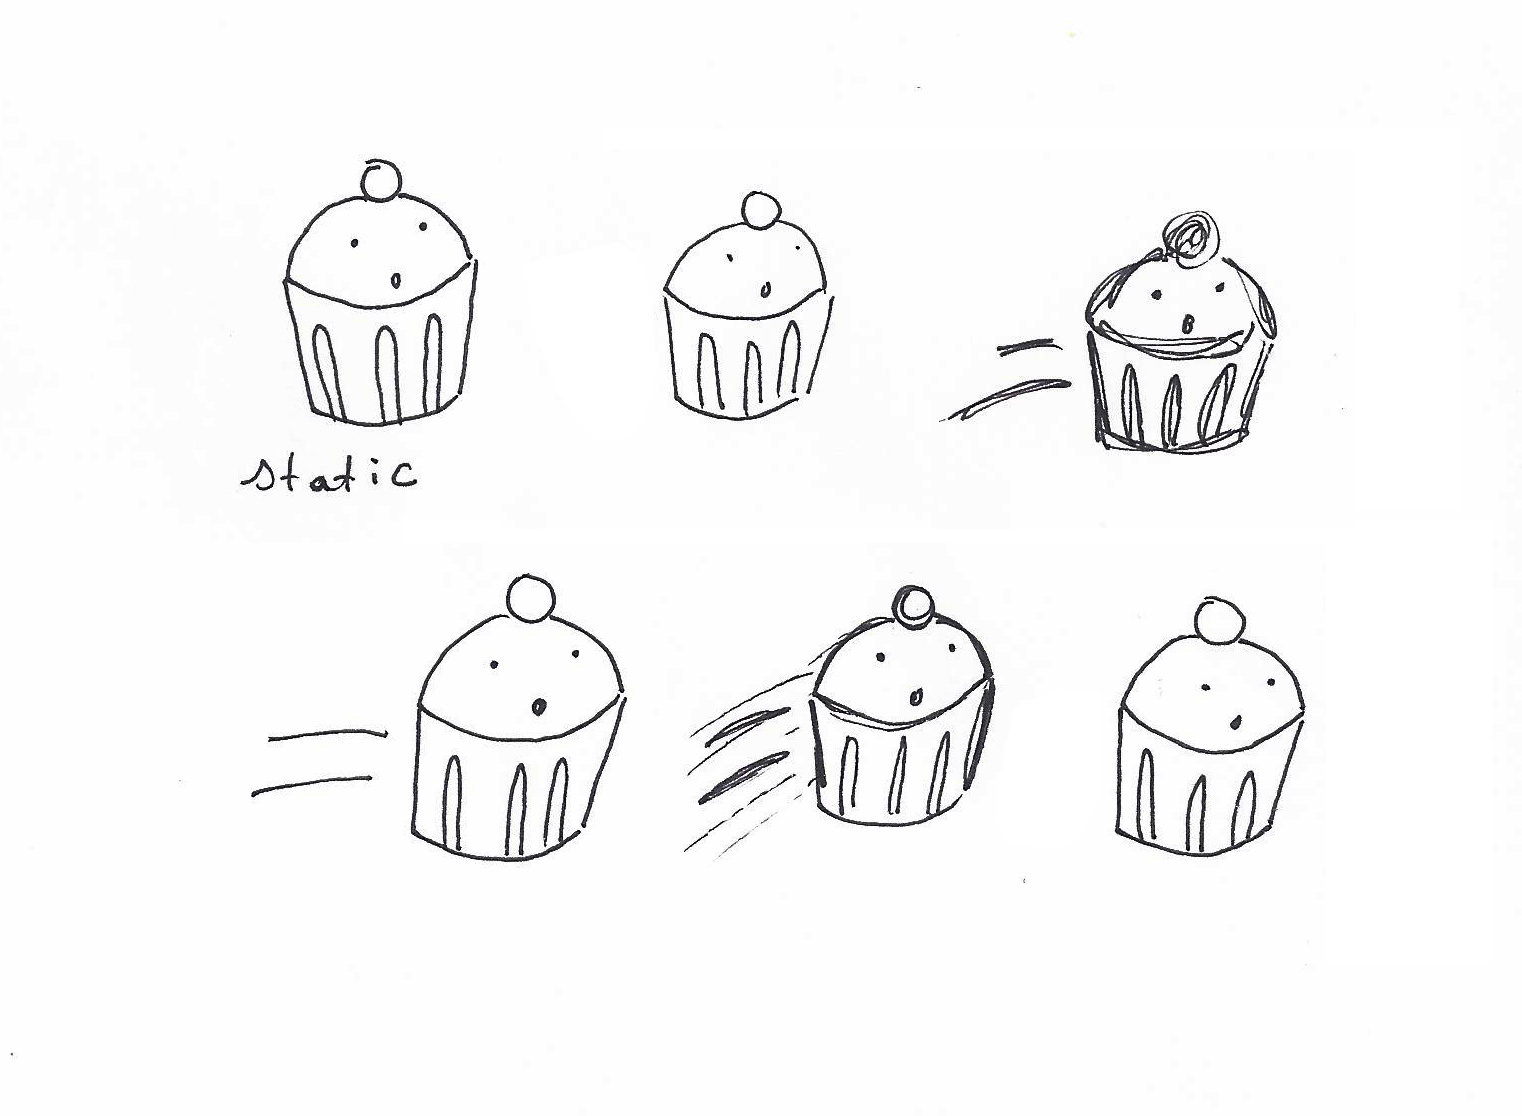 cupcakes drawing with movement